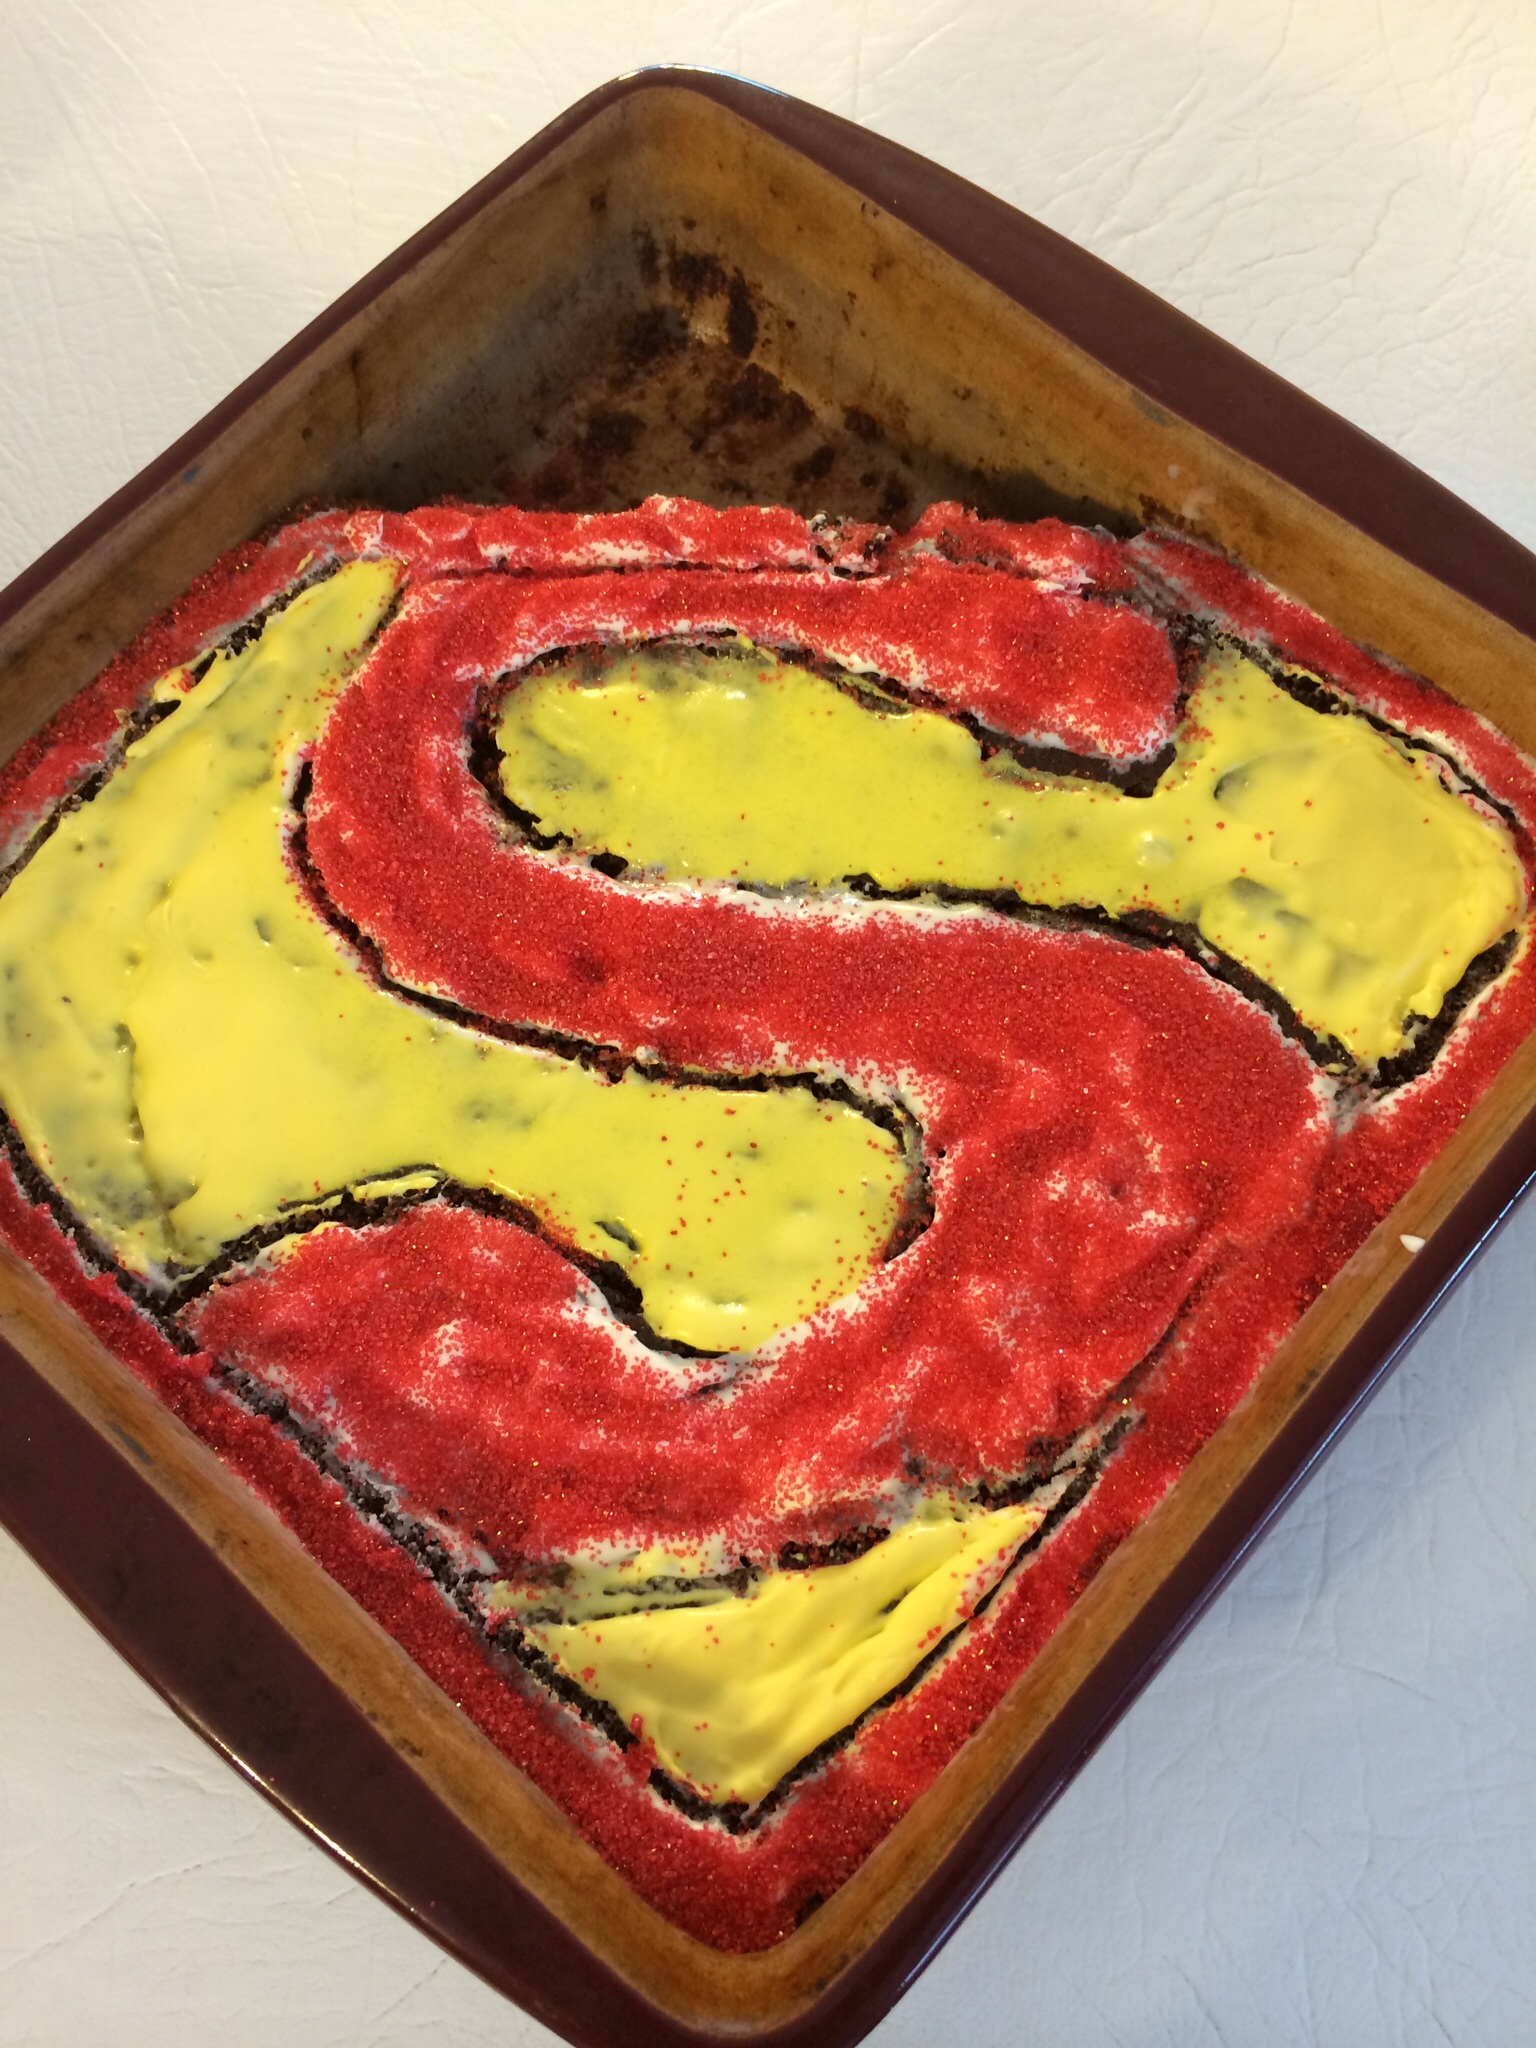 Months ago I started prepping Turtles and Planes themed parties.  Then he tells me, SuperMan.